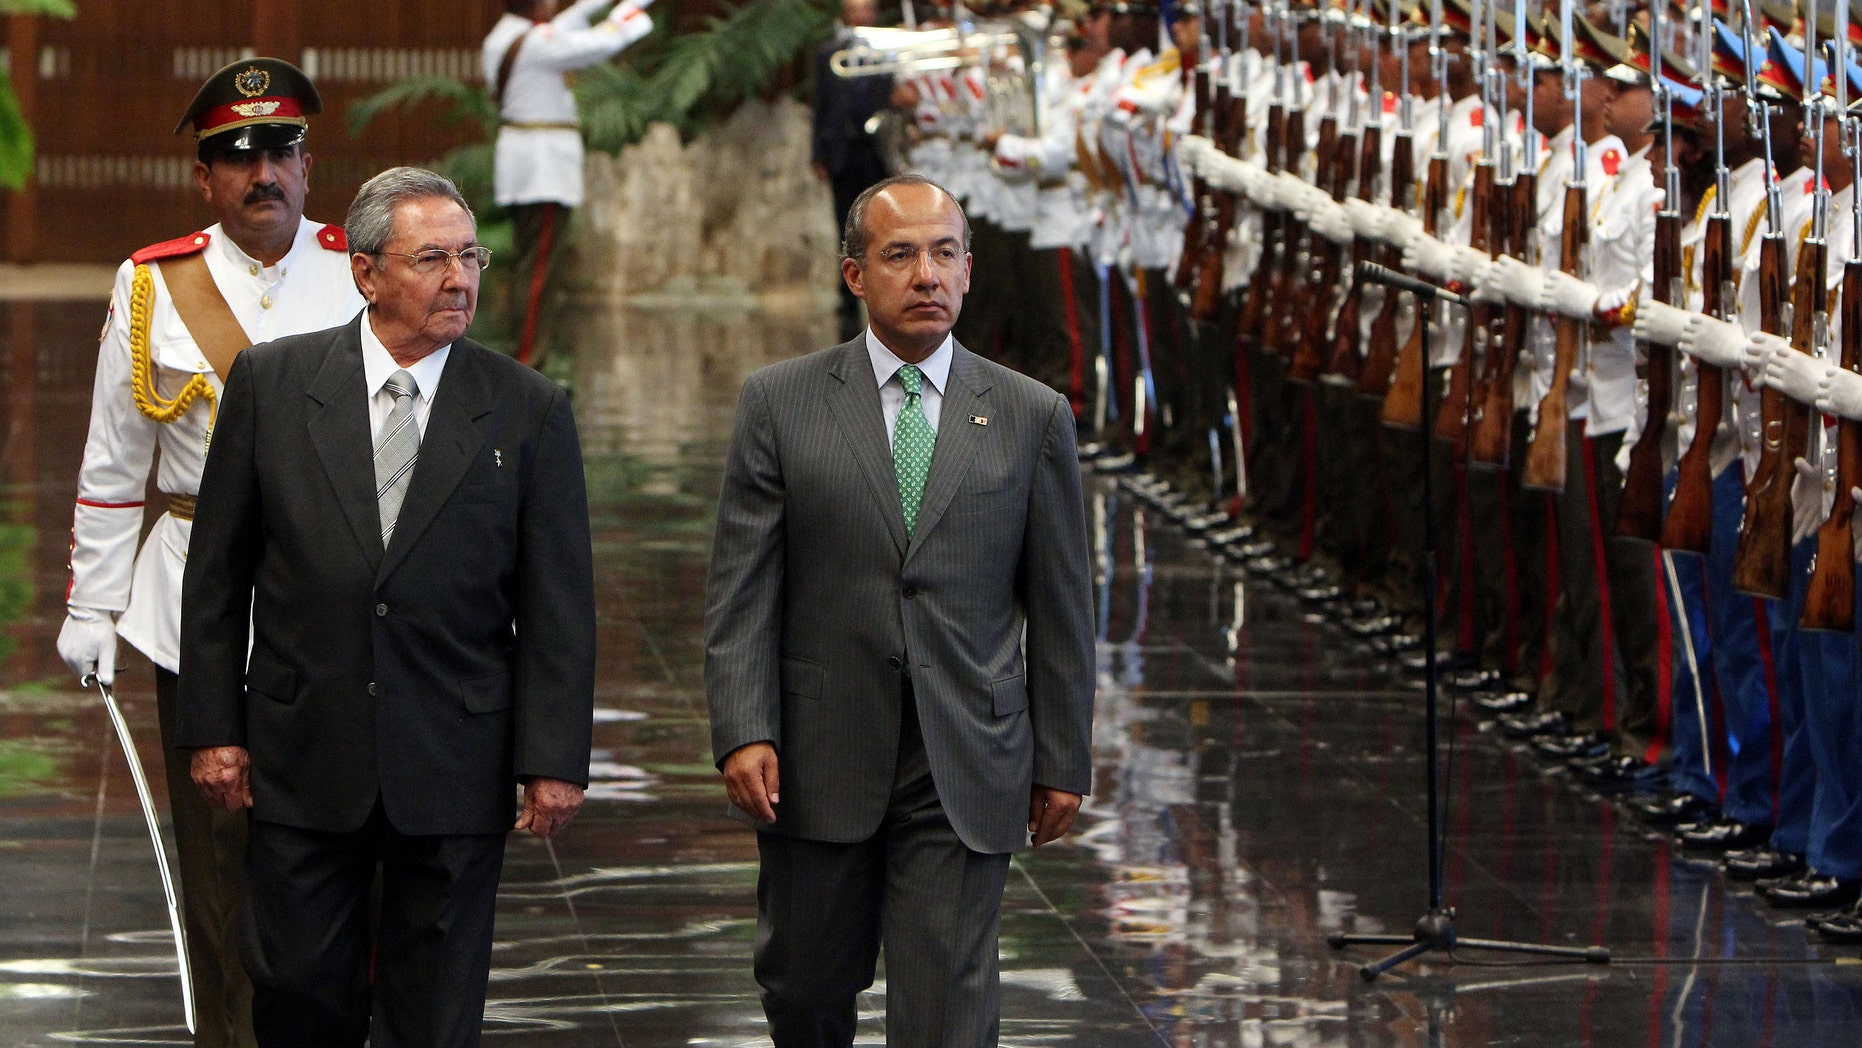 Cuba's President Raul Castro, front left, and Mexico's President Felipe Calderon review a honor guard during a ceremony at the Revolution palace in Havana, Cuba, Wednesday, April 11, 2012. Calderon is on a two-day official visit to Cuba. (AP Photo/Alejandro Ernesto, Pool)